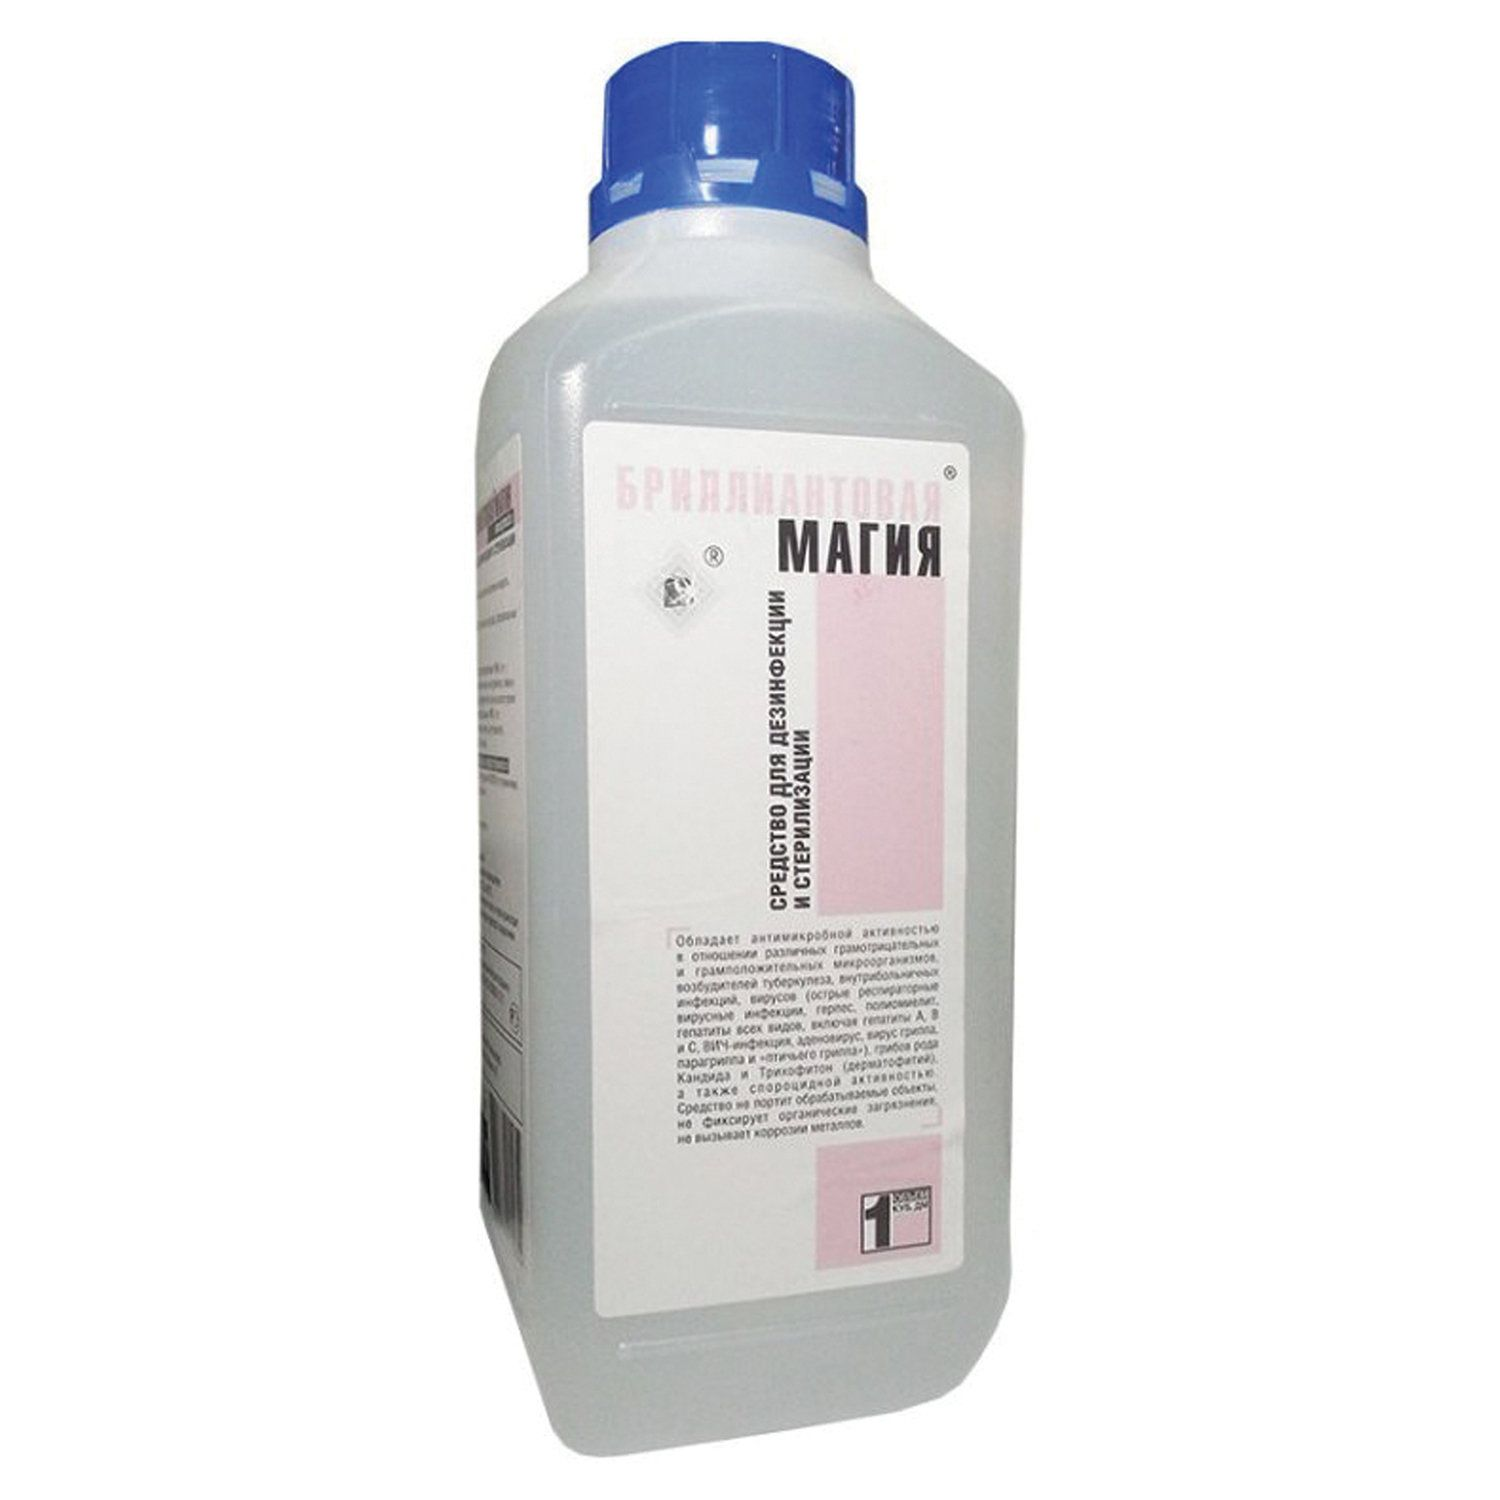 BRILLIANT / Disinfectant BRILLIANT MAGIC 1 l, ready-made solution